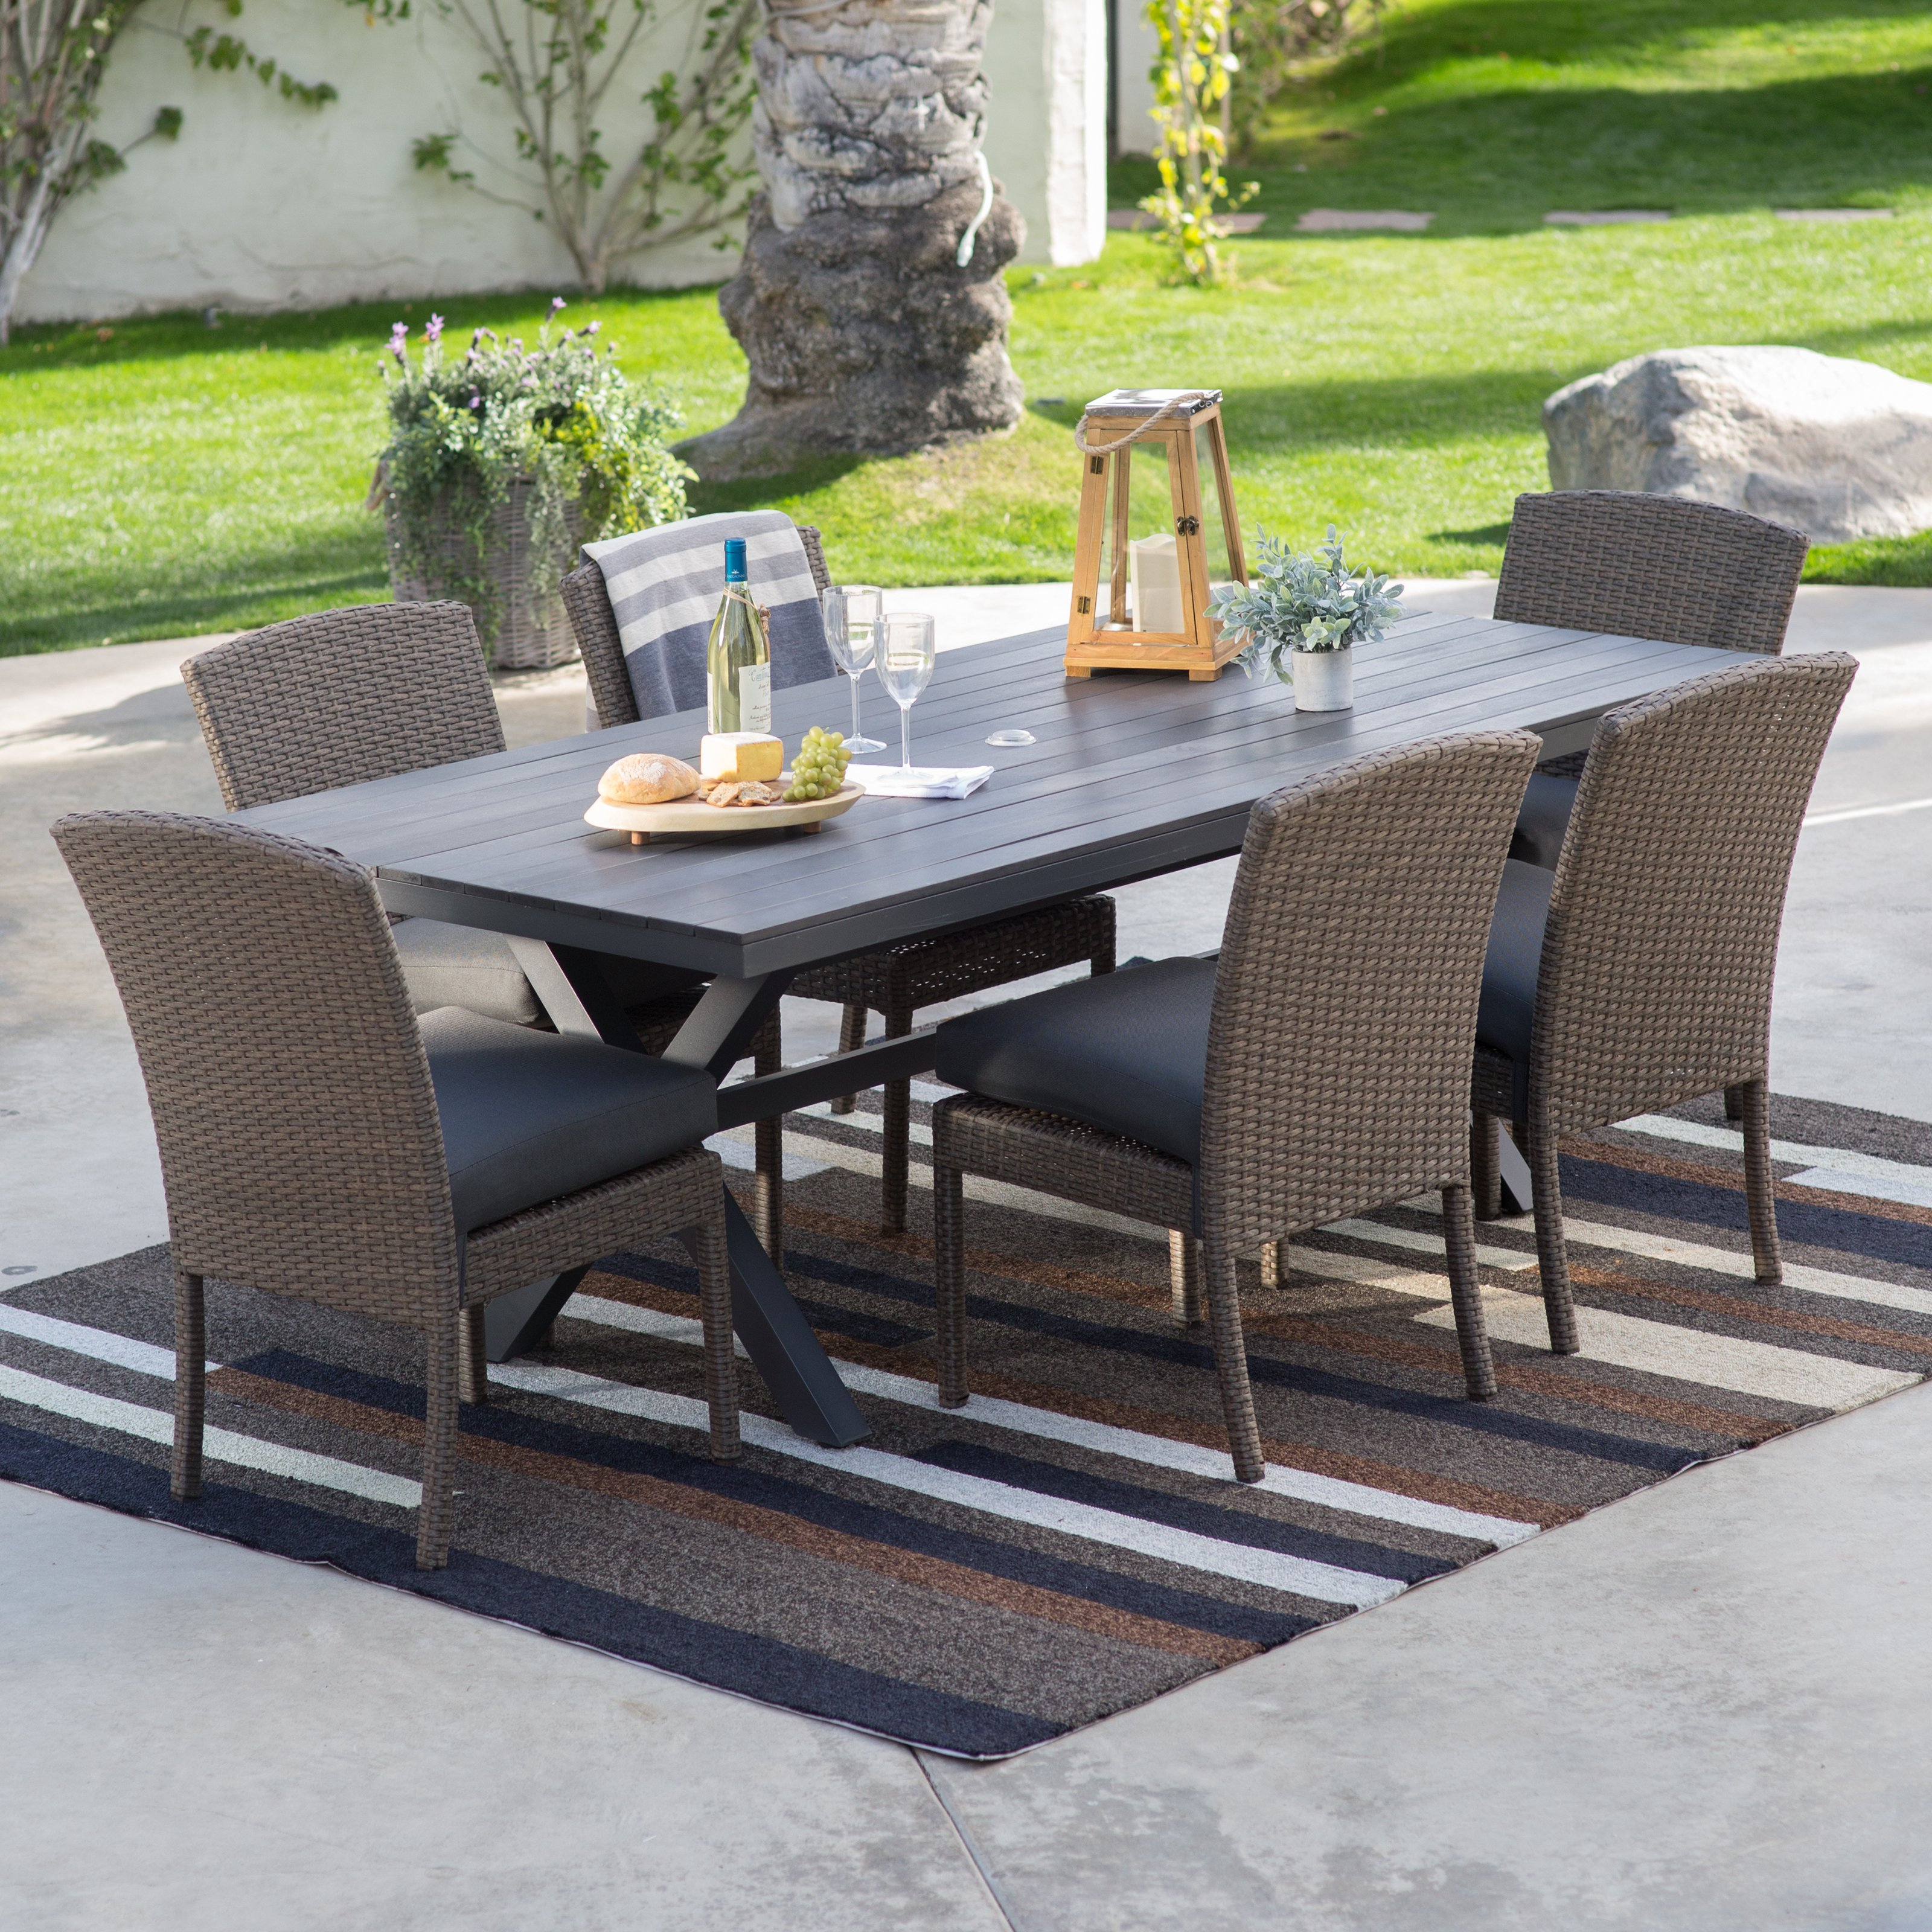 patio furniture dining sets photo - 8